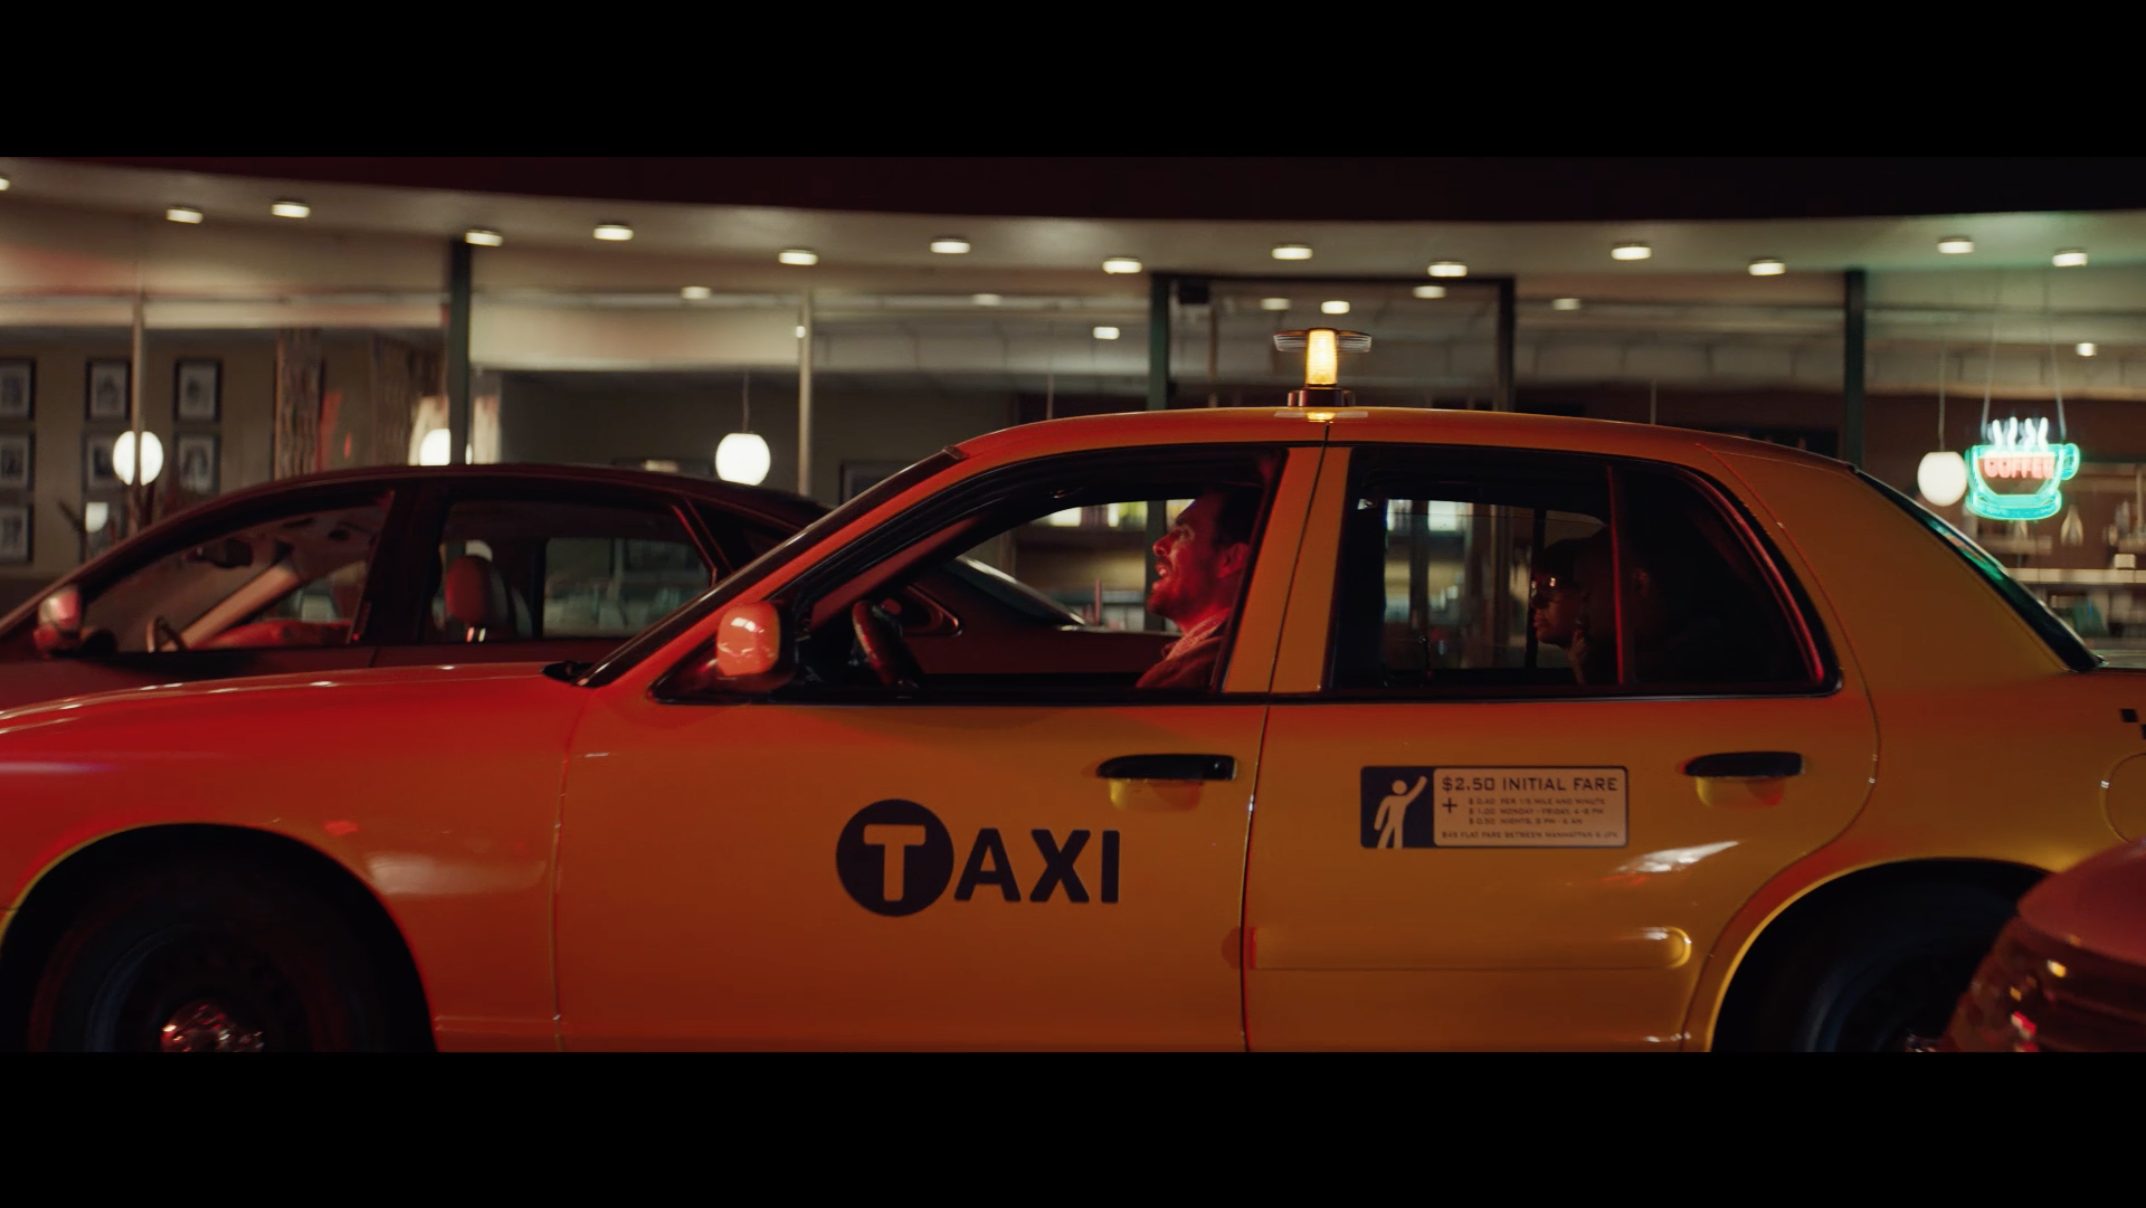 Thumbnail for Thursday Night Football - Taxi